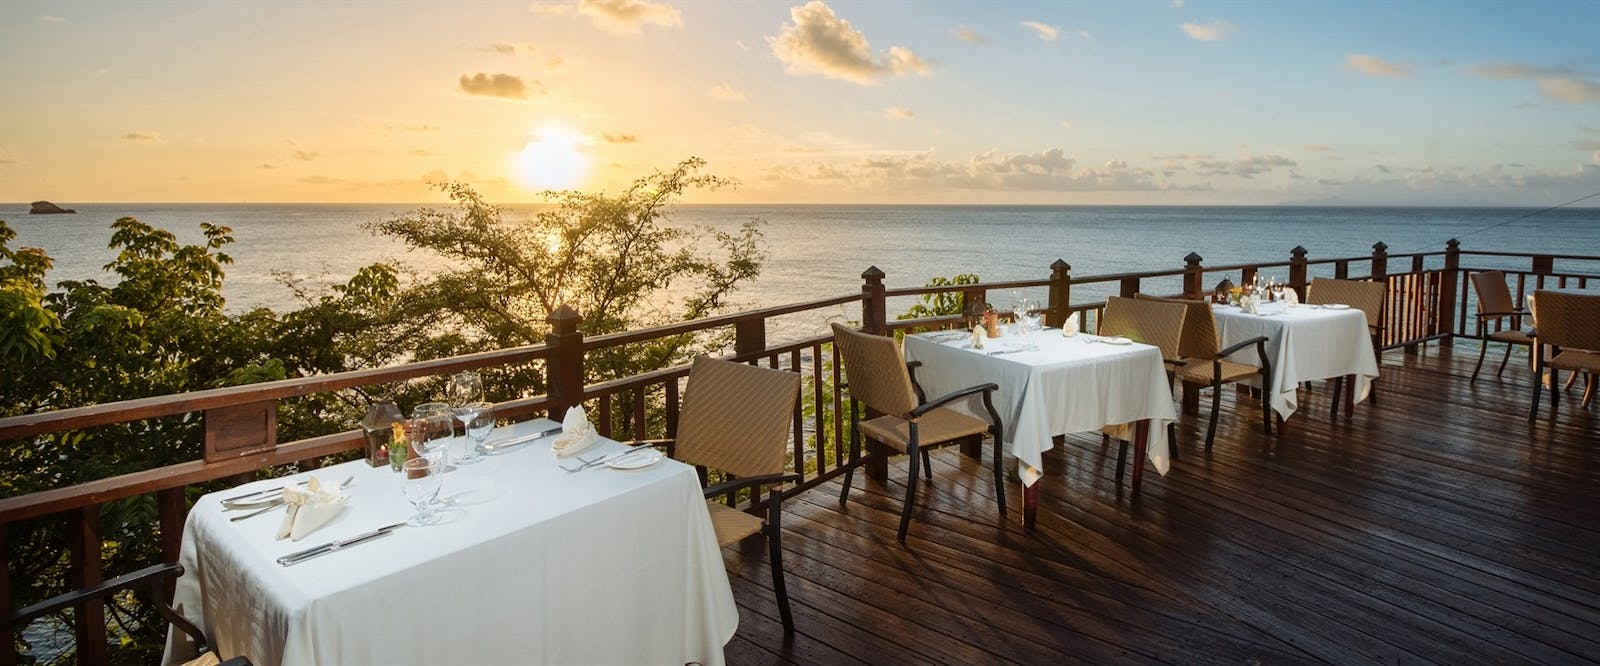 Cliff at Cap, Cap Maison, St Lucia